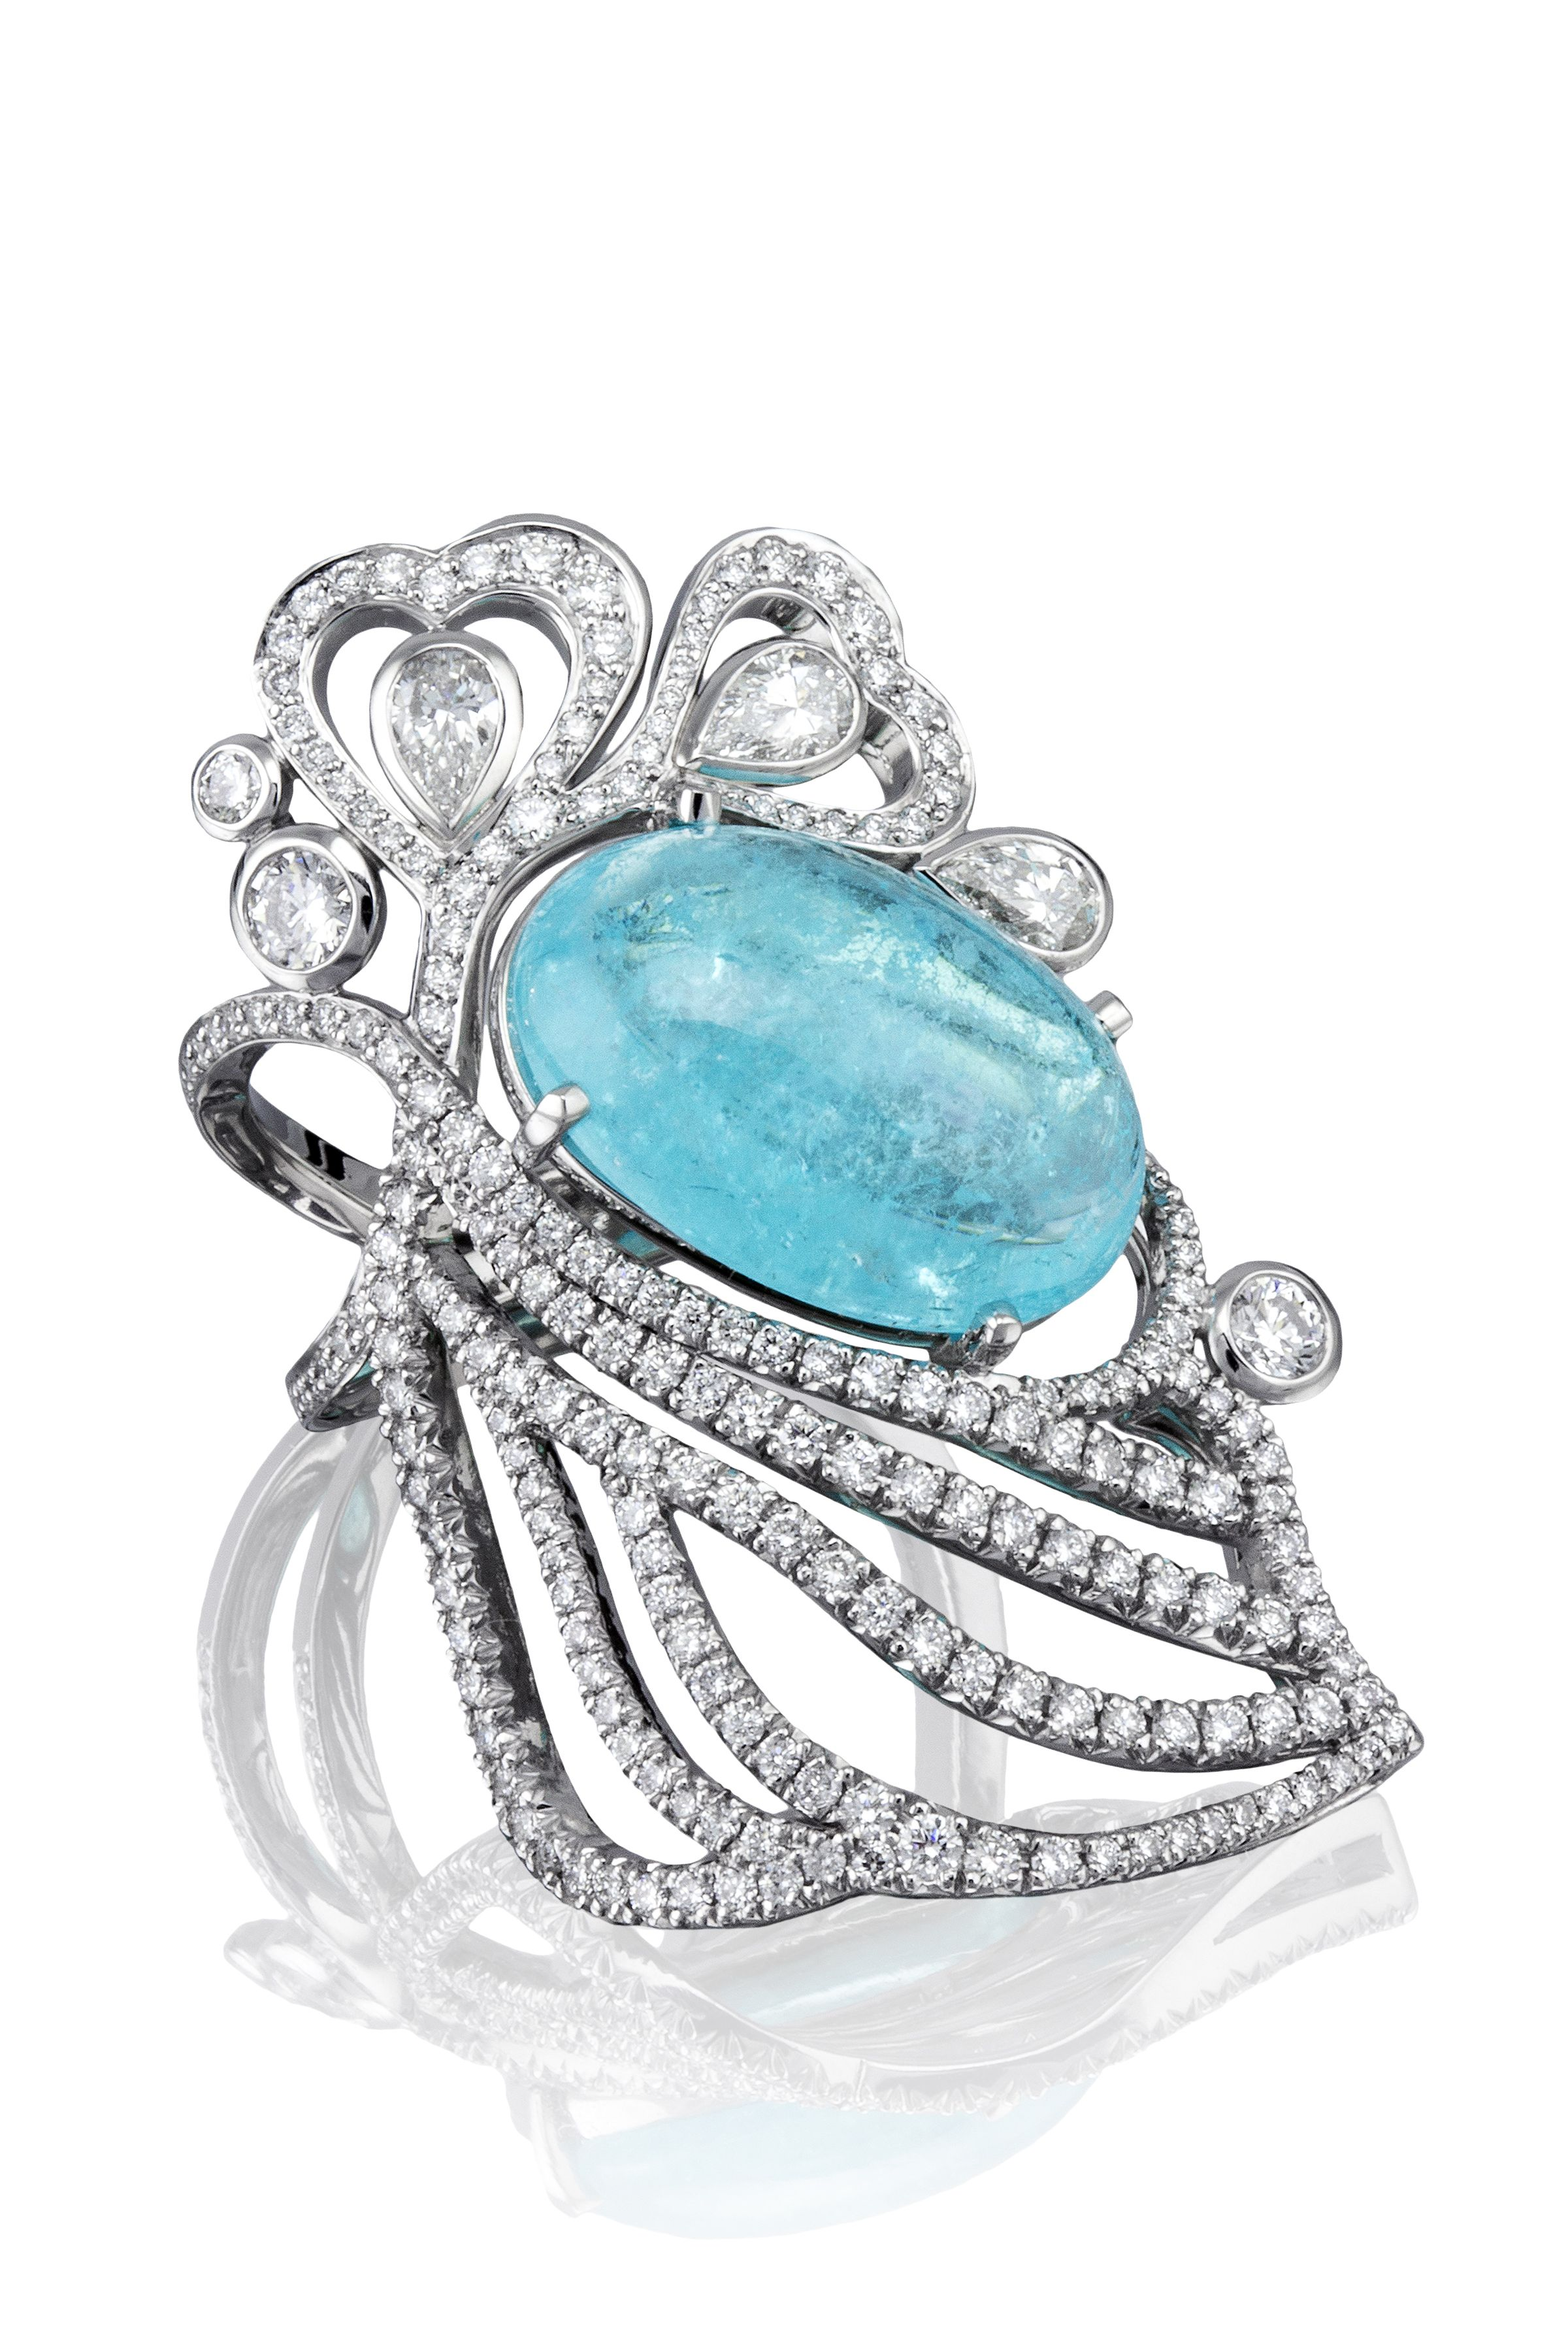 aacc66b01 The 'Atlantic Blue' ring from Boodles' 'Ocean of Dreams' collection. This  vibrant Paraiba tourmaline takes centre stage in this platinum and diamond  ...